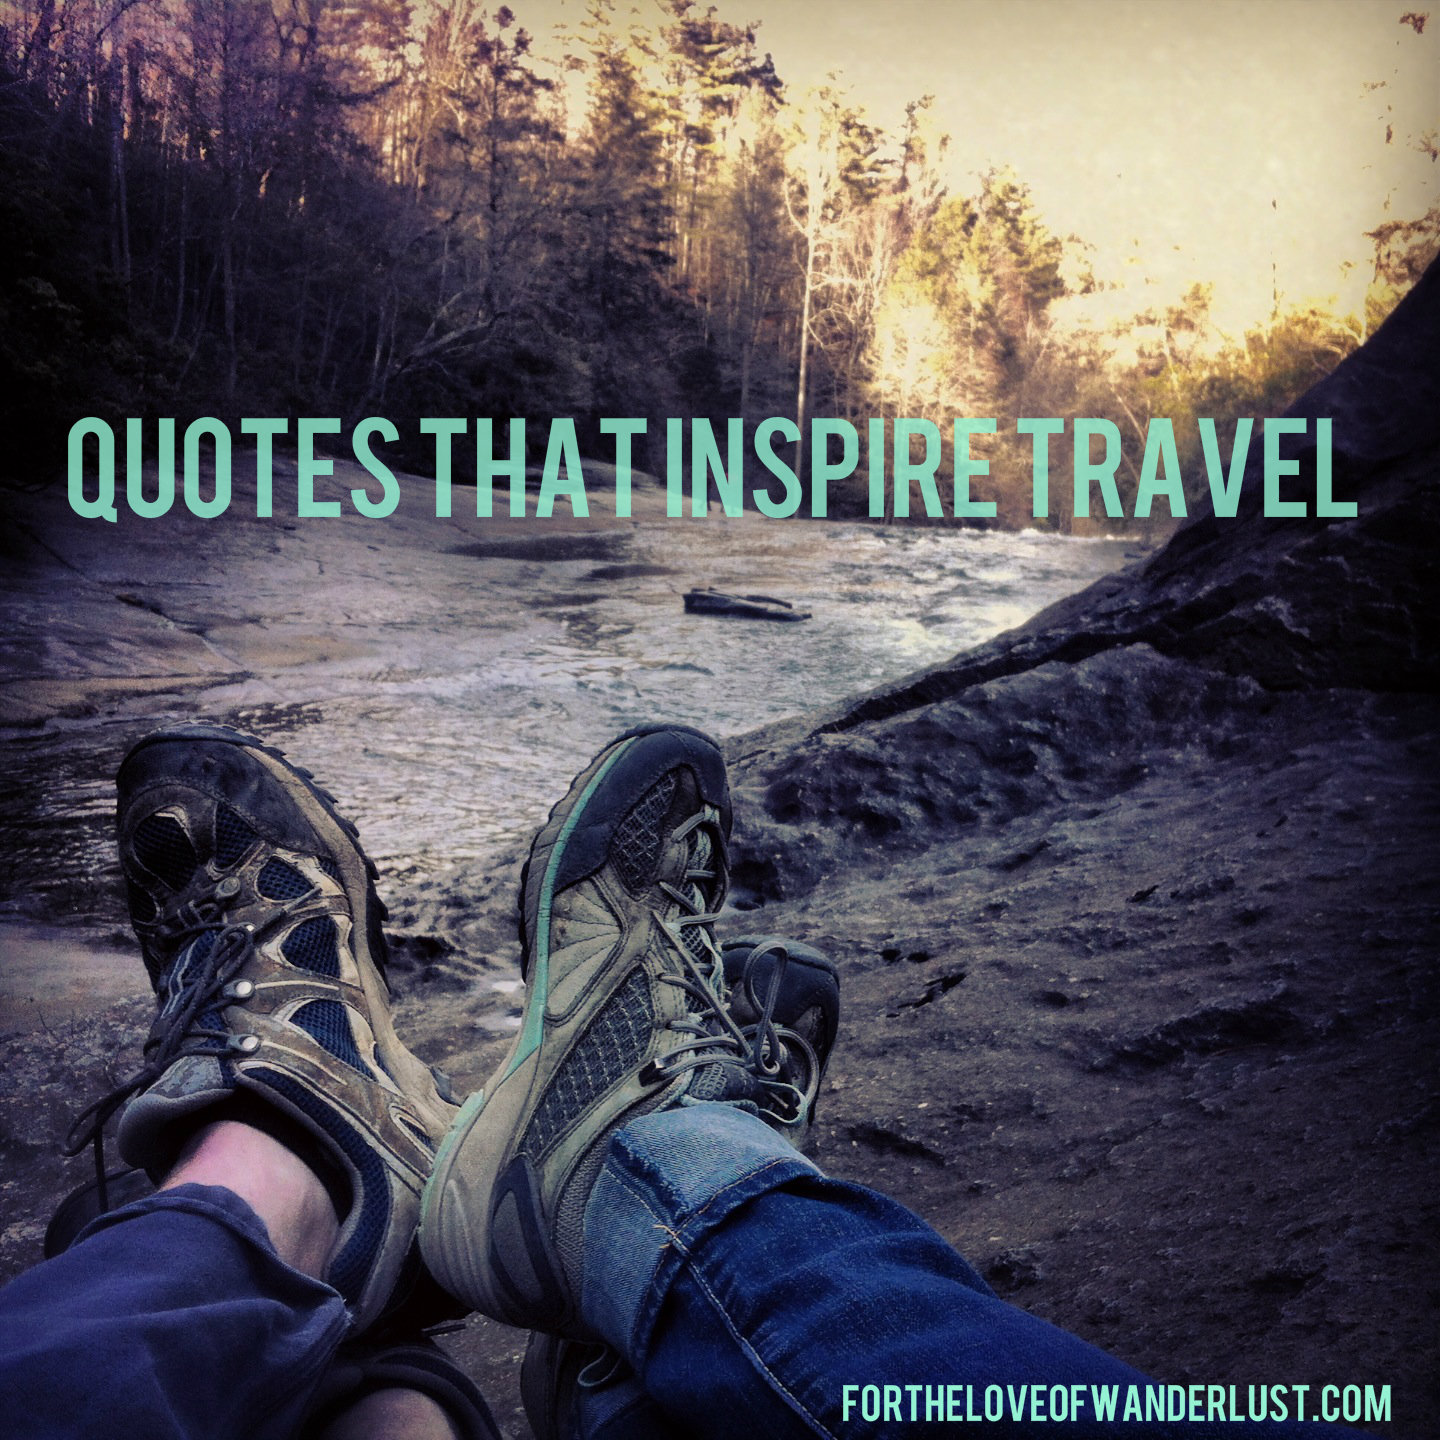 Quotes That Inspire Wanderlust Wednesday Quotes That Inspire Travel Part 17  For